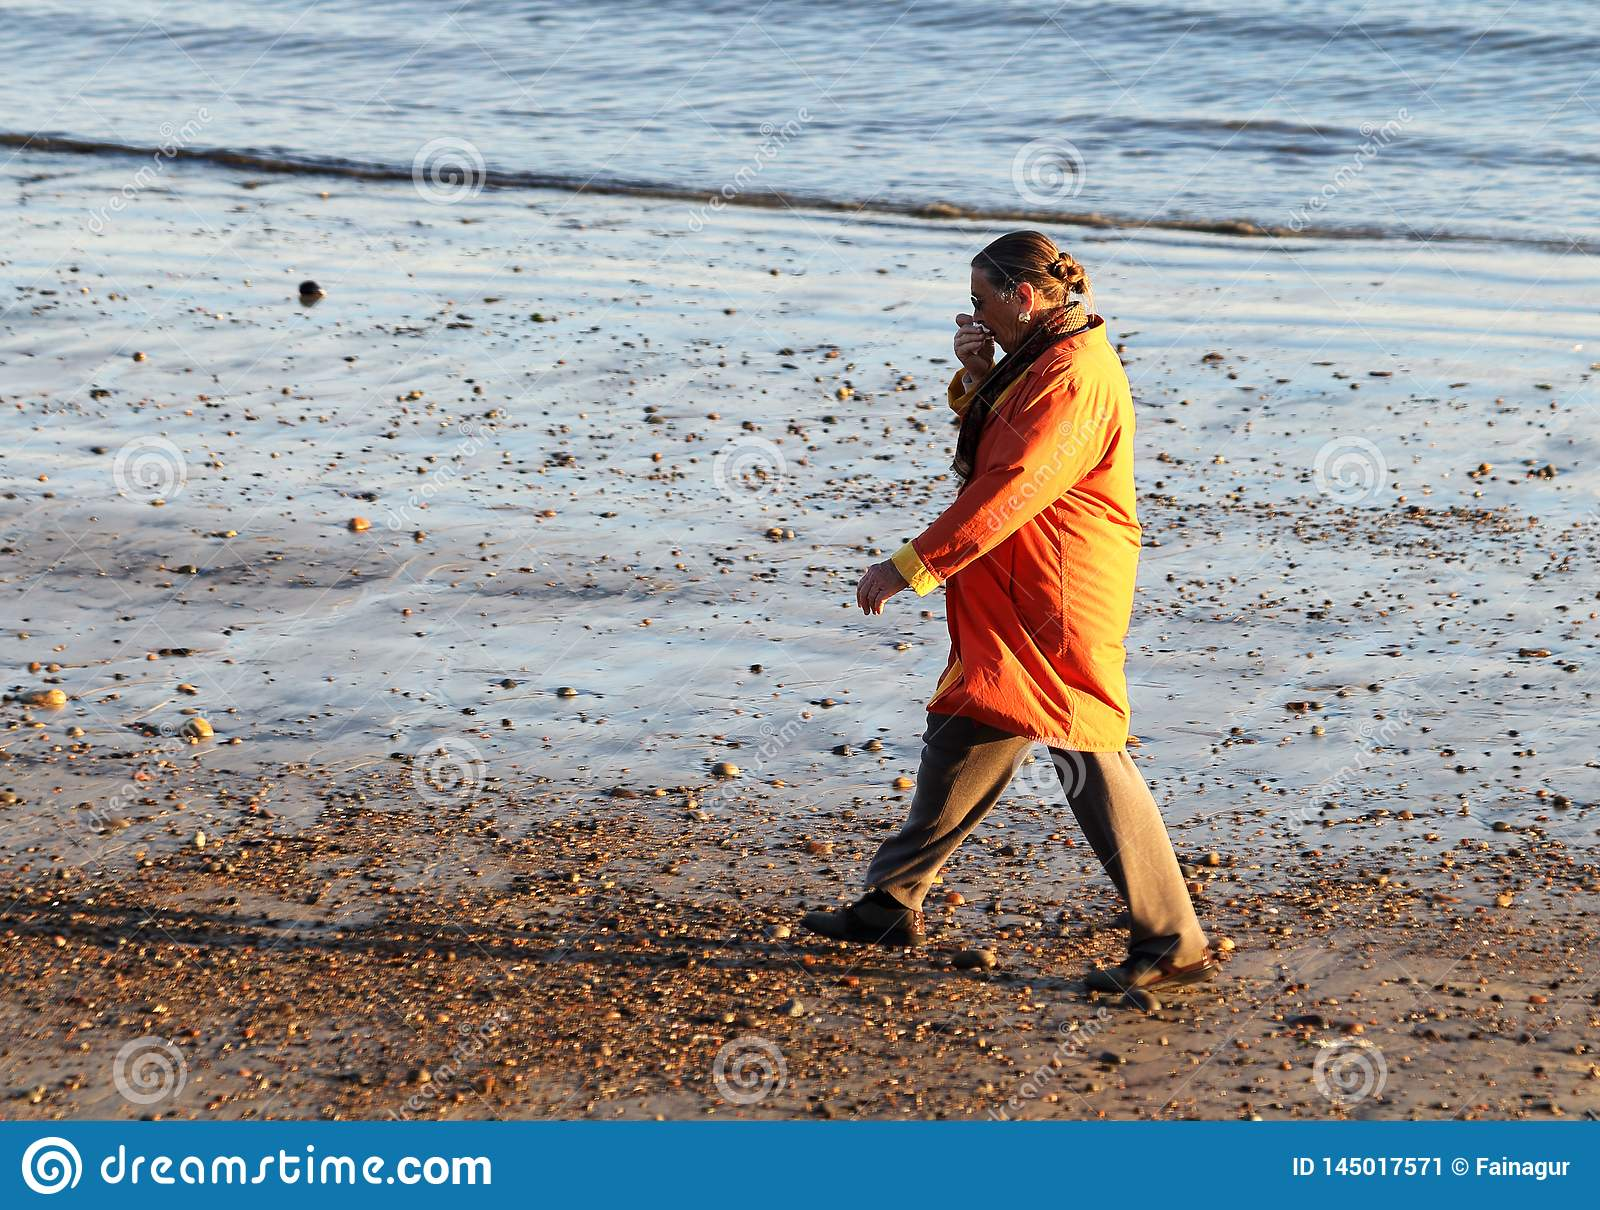 A woman in the orange coat walking on the beach at early spring in Gloucester, Massachusetts